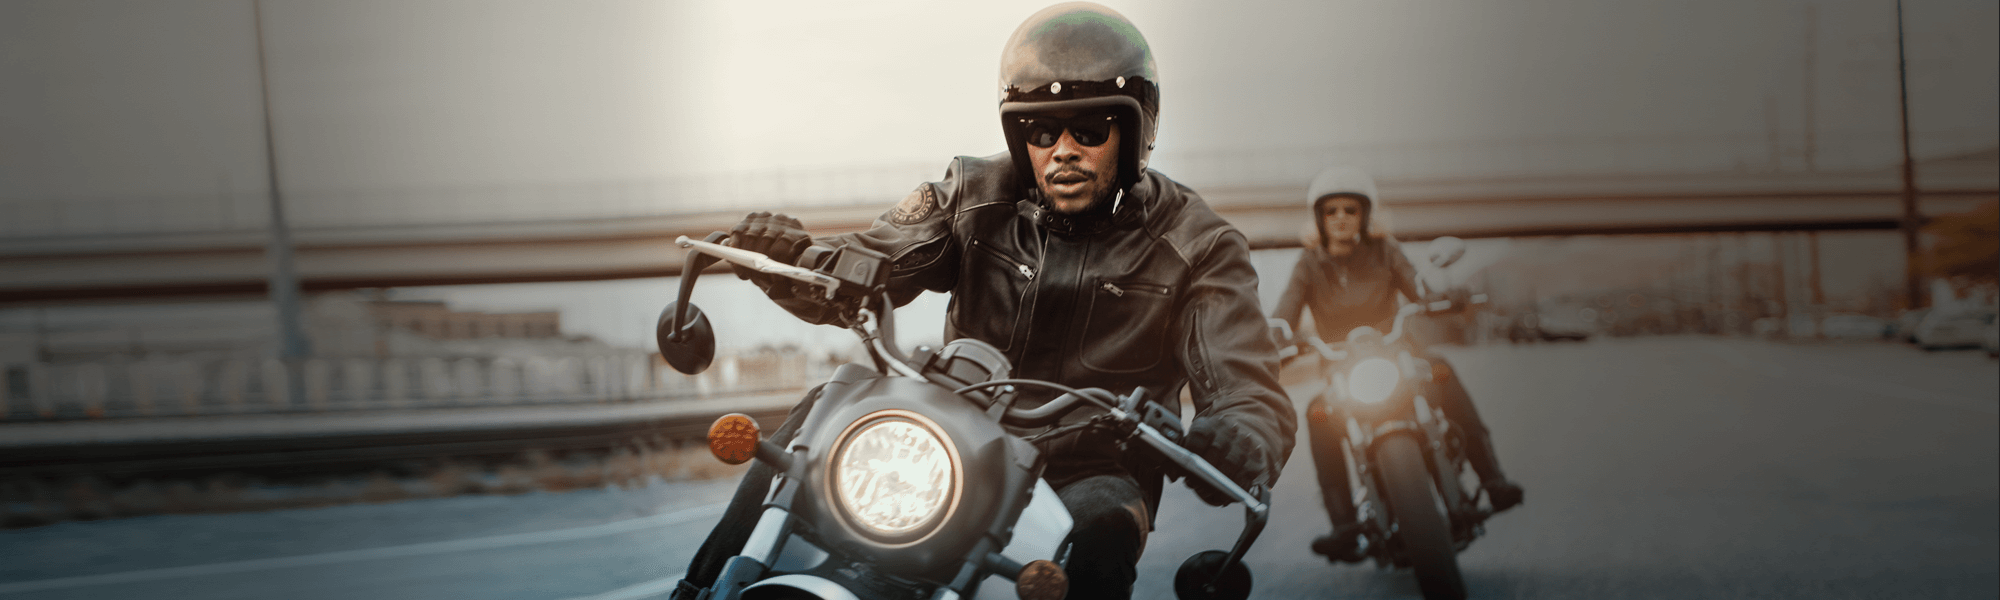 2019 IMS Scout Lifestyle